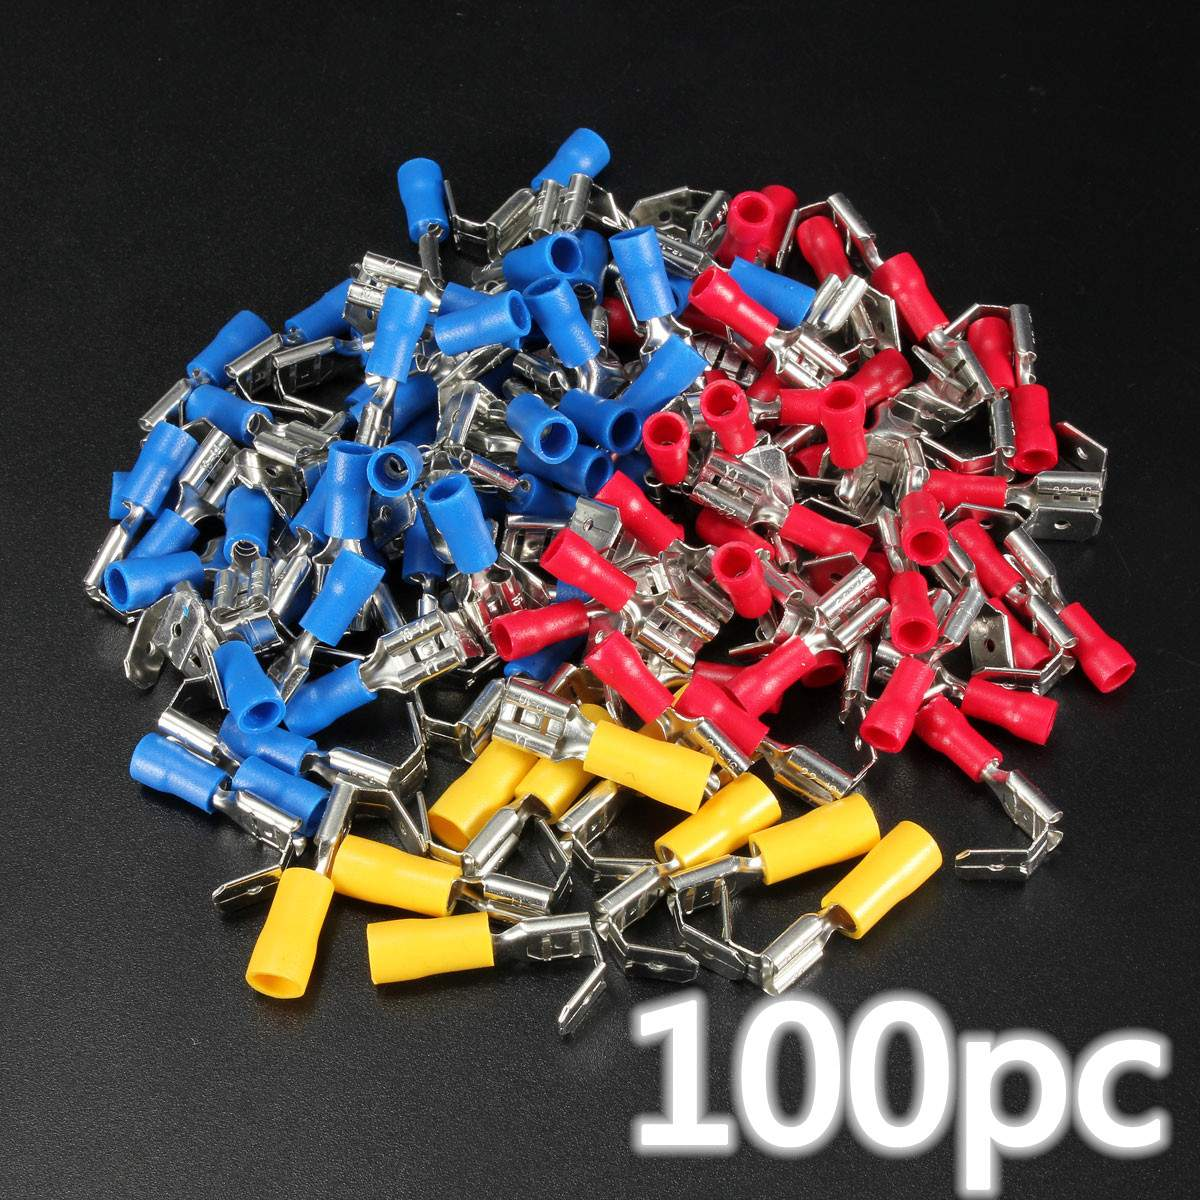 100 Pcs Electrical Male/&Female Insulated Wire Bullet Crimp Connector Terminal YW